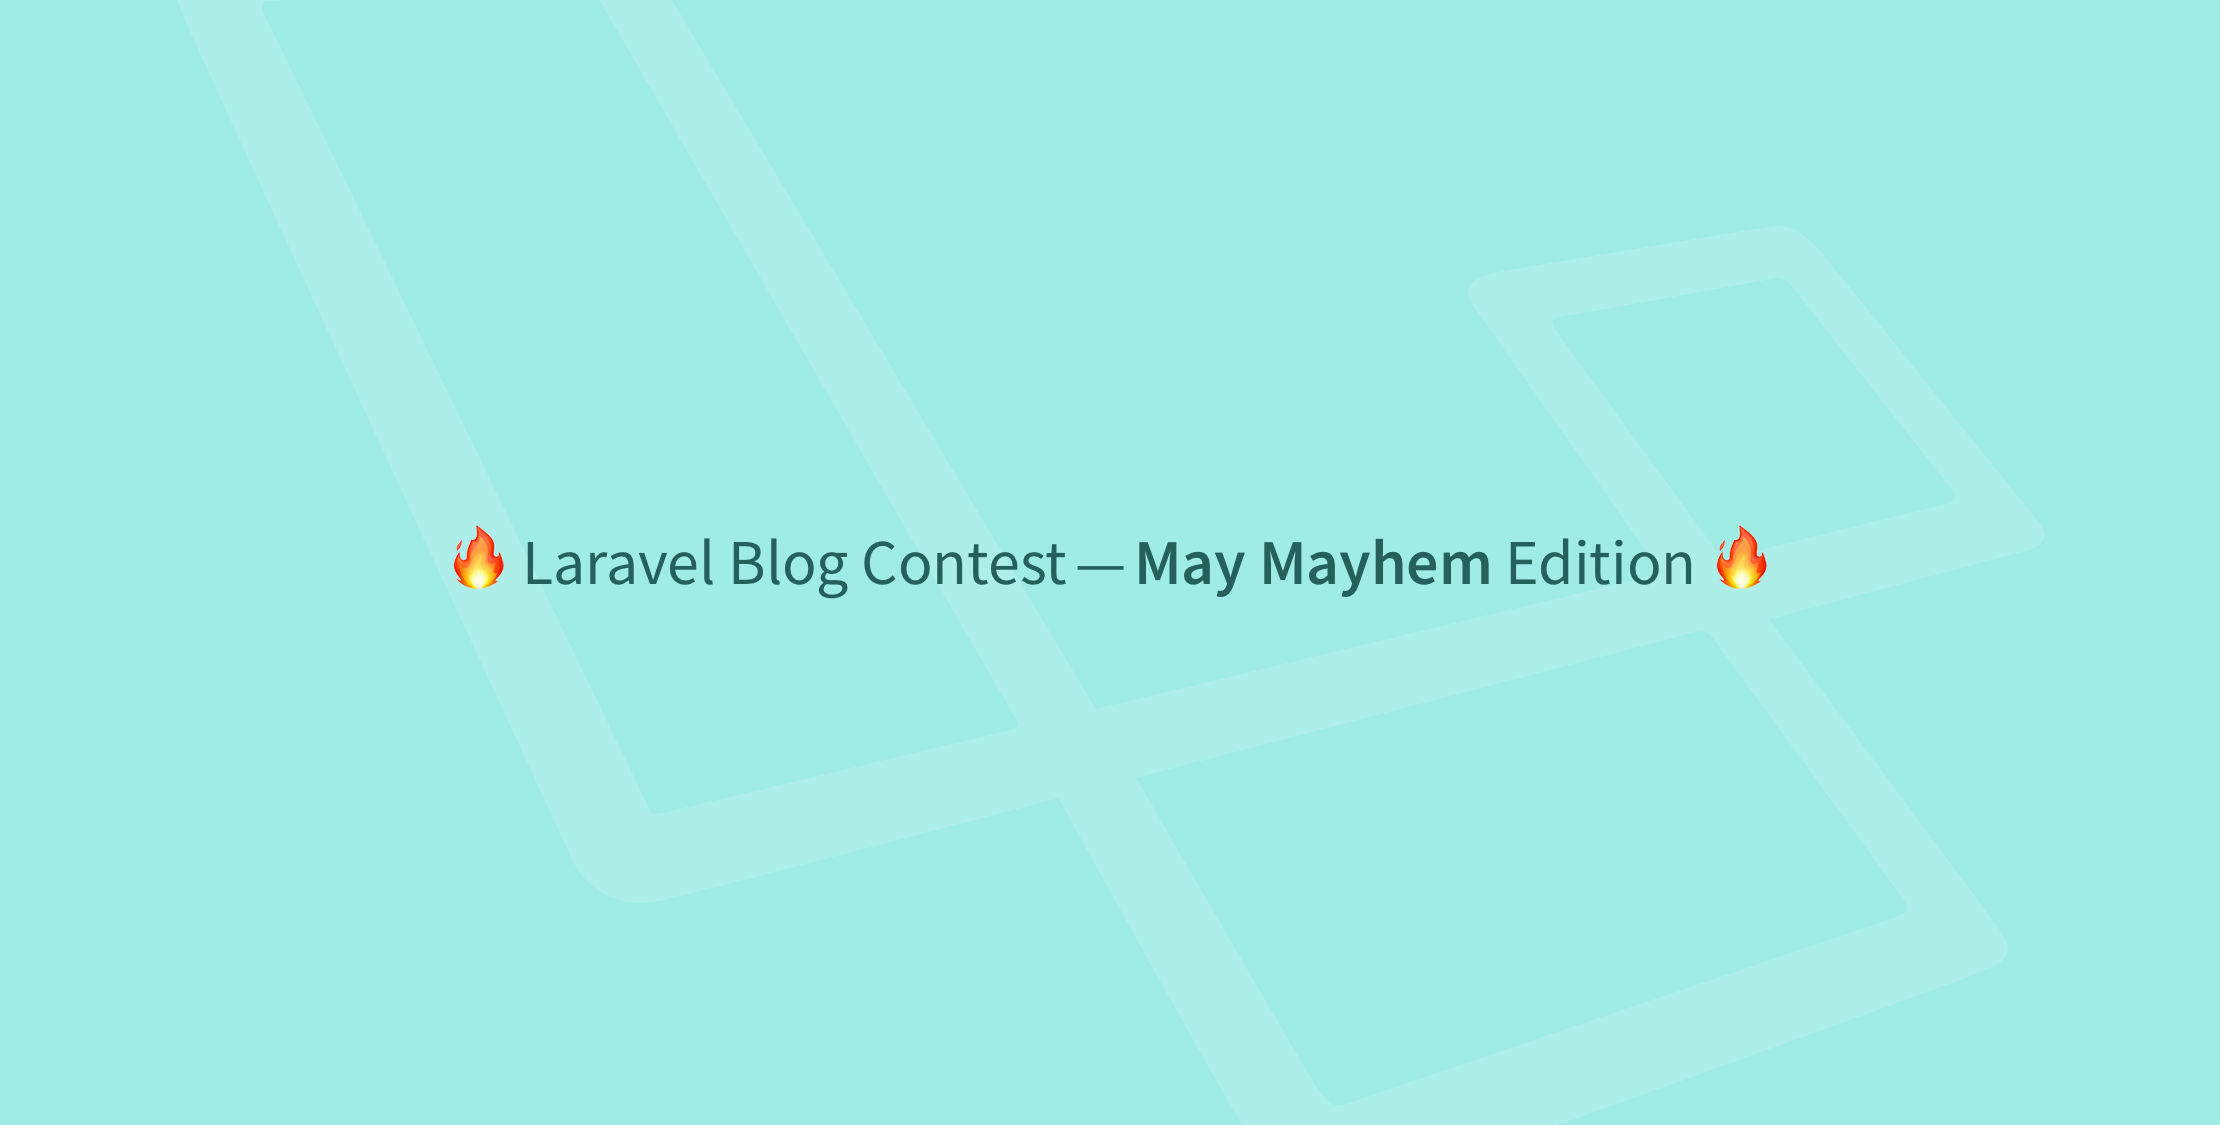 blog-contest-may-mayhem-featured.png